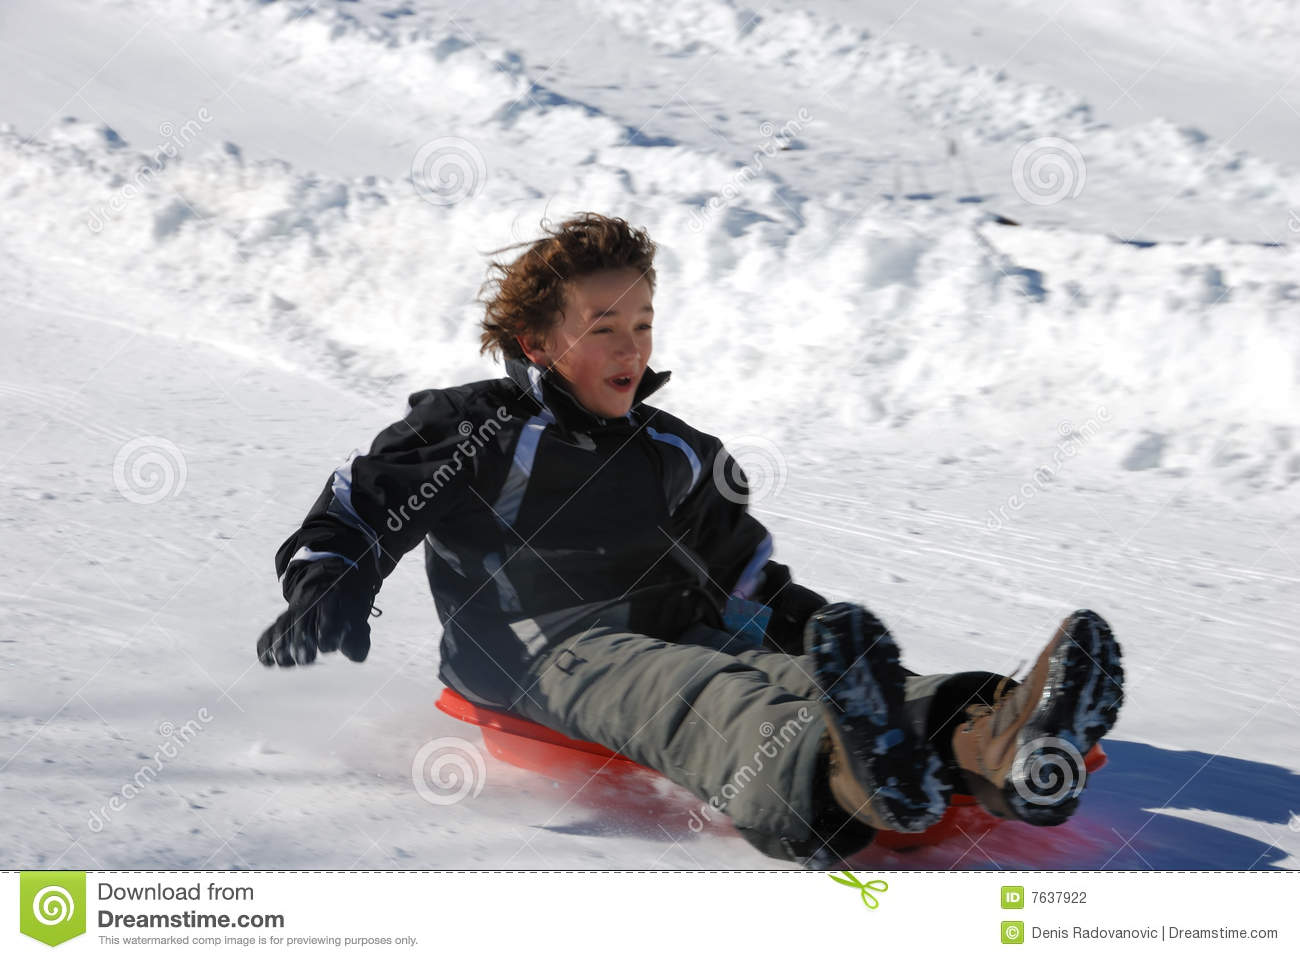 Boy Sledding Fast Down The Hill On A Red Sled Stock